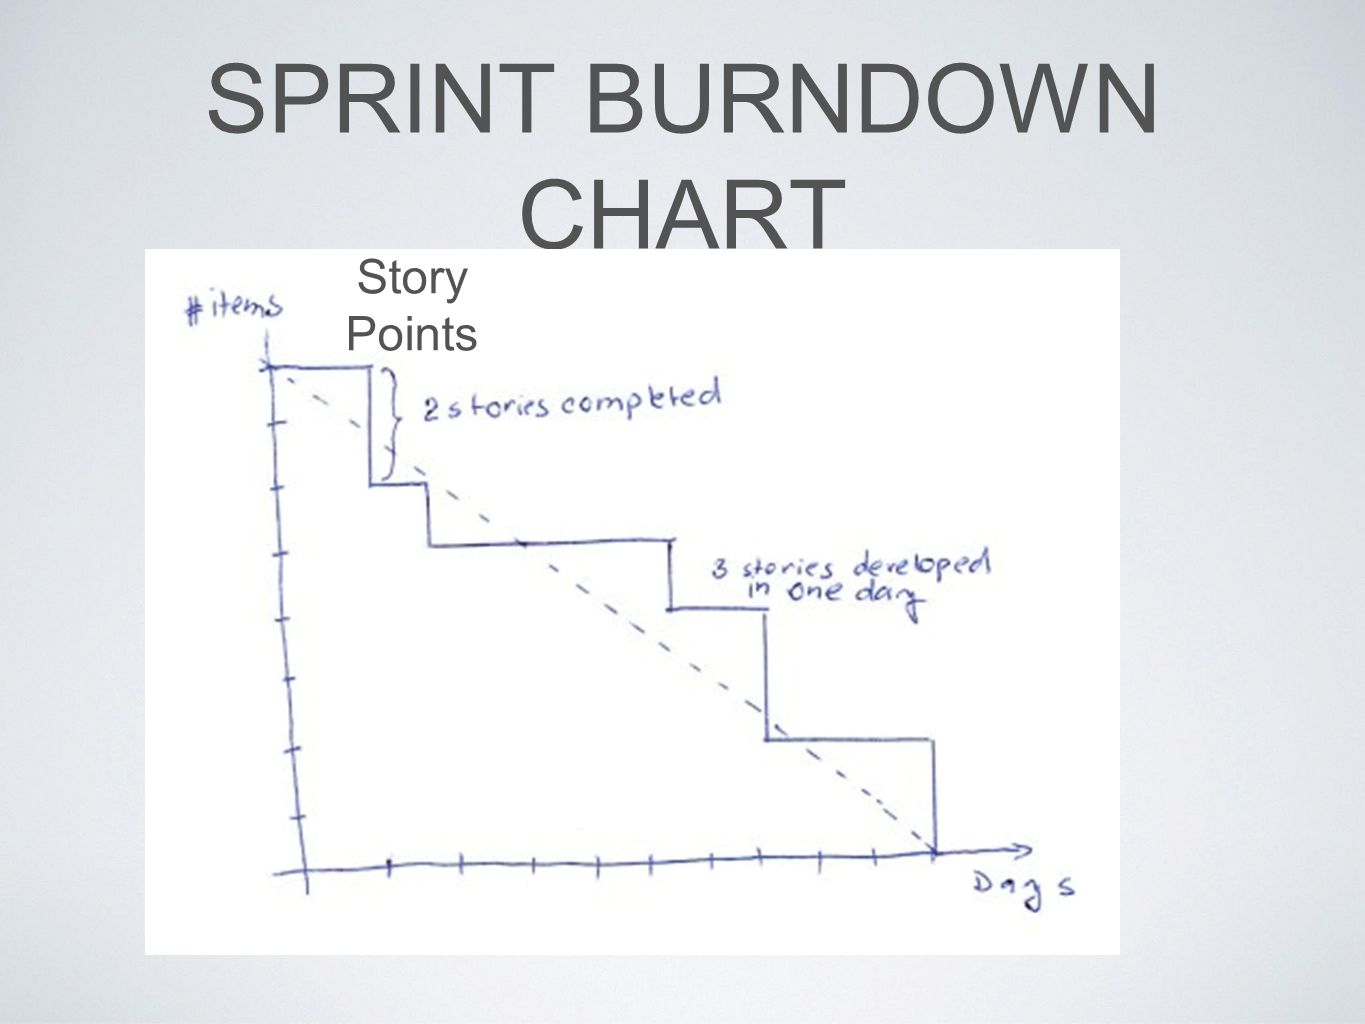 SPRINT BURNDOWN CHART Story Points